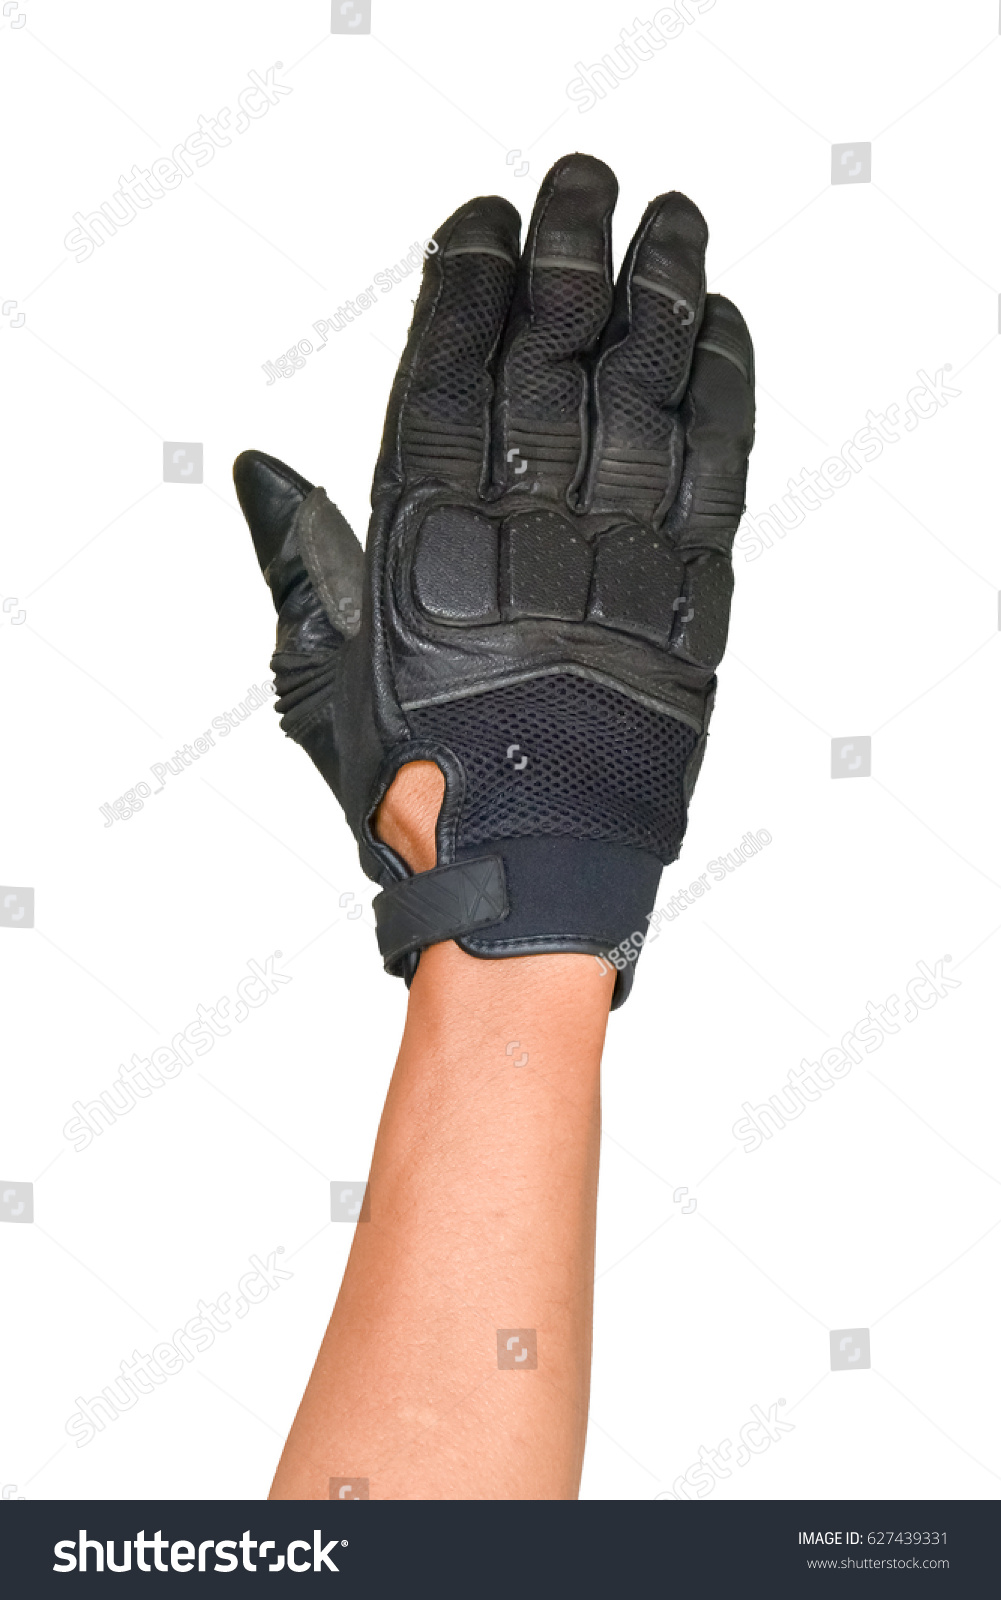 Motorcycle gloves with id pocket - Motorcycle Glove And Hand Signal Slow Down Or Stop Isolated On White Background